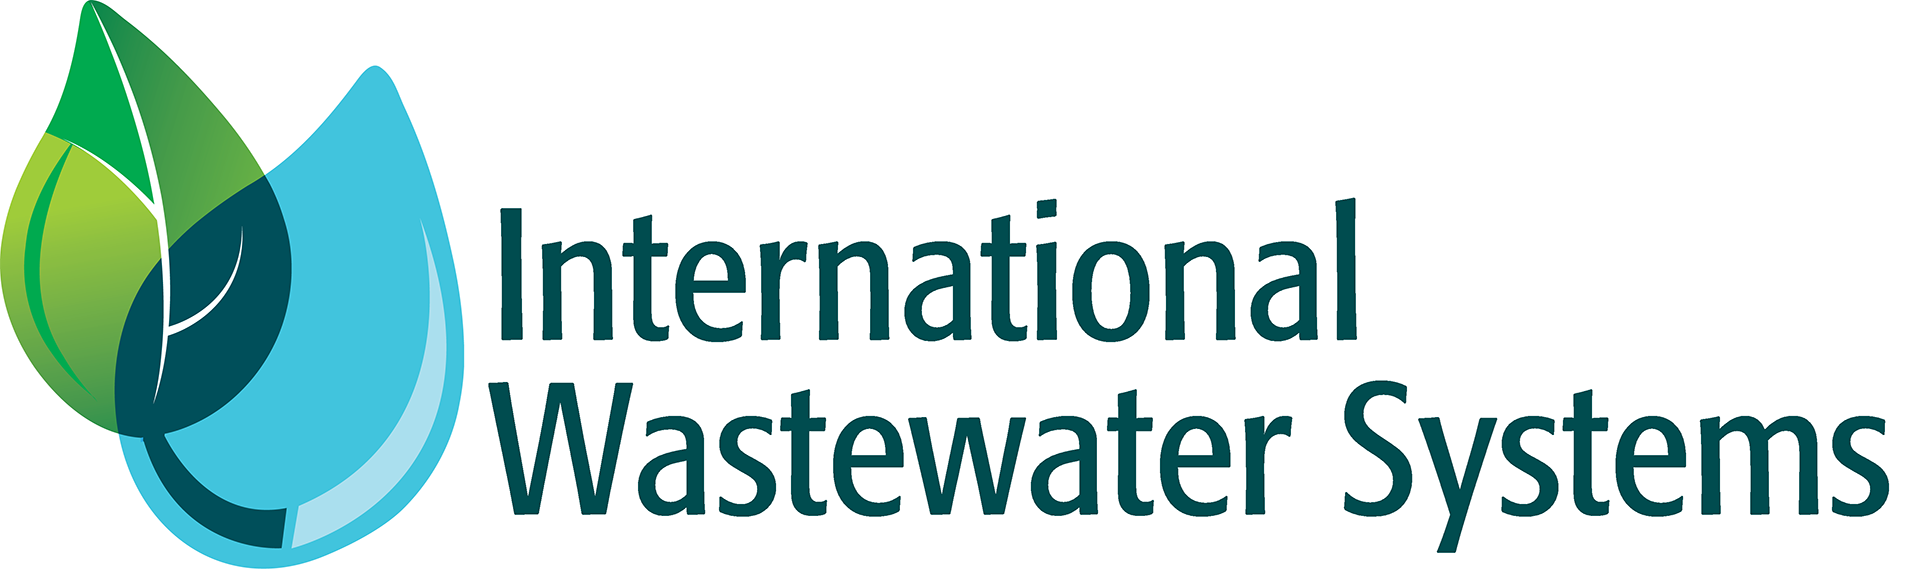 International Wastewater Systems company